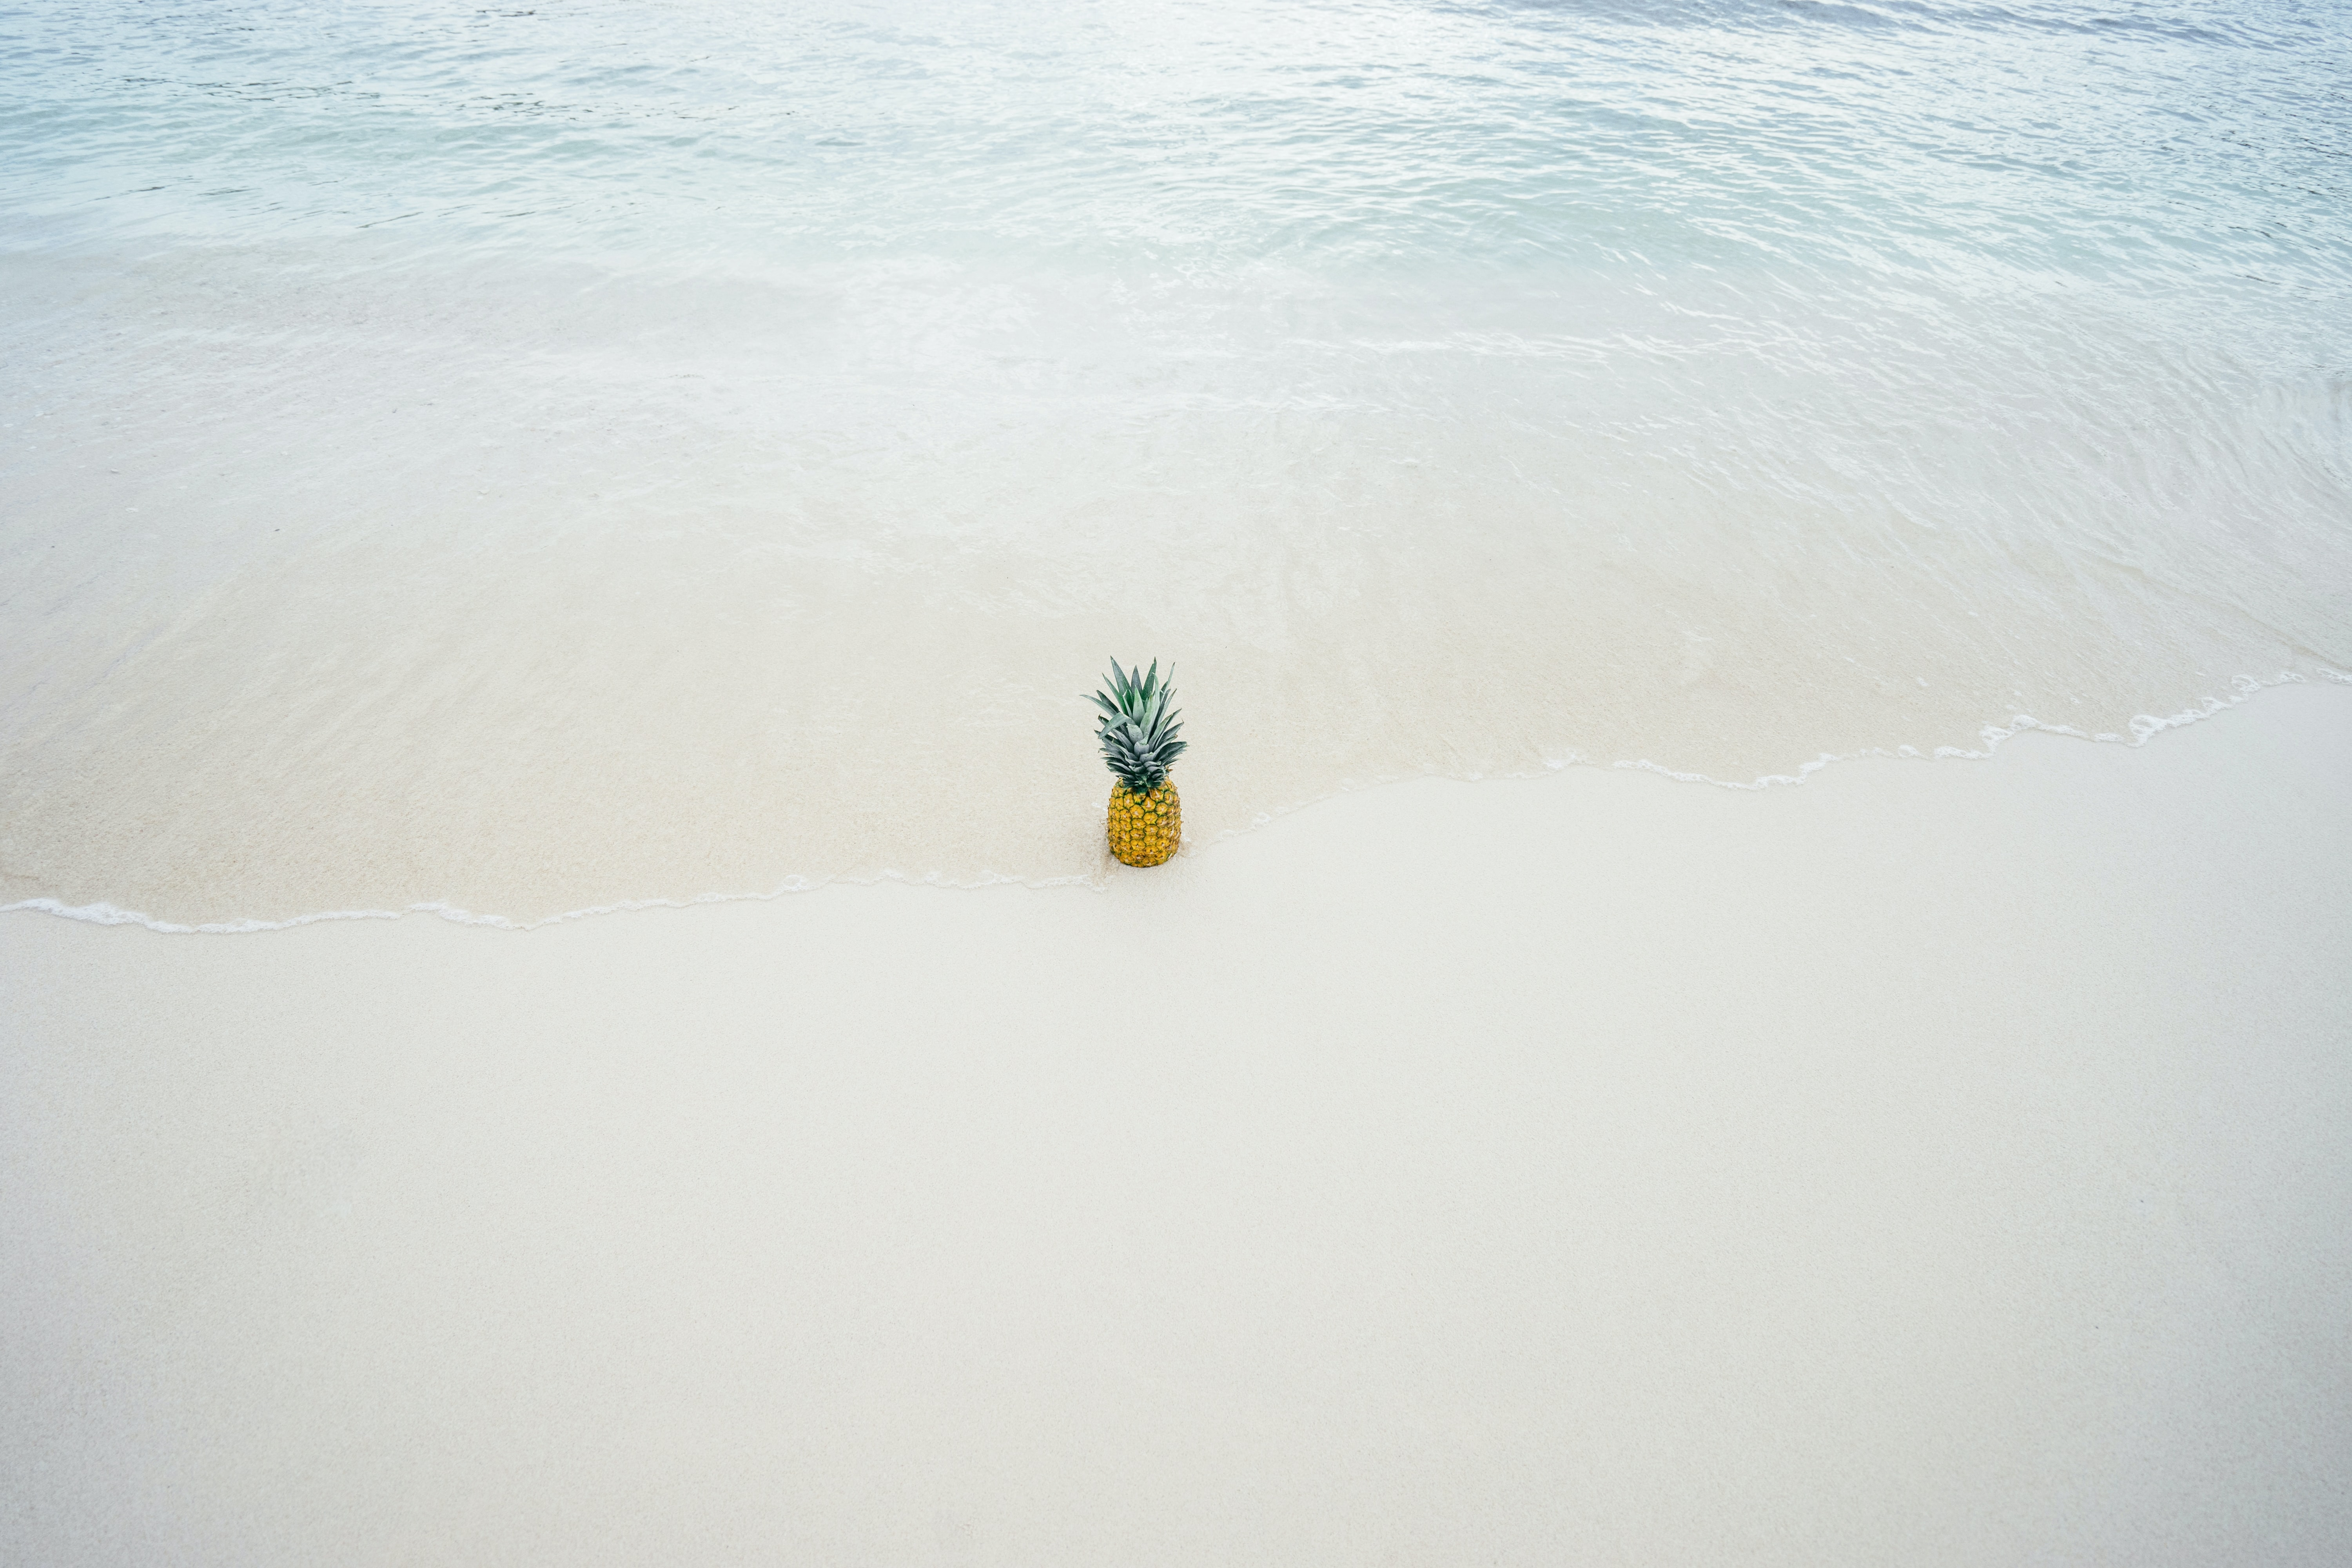 Ocean washing ashore with the pineapple in the beach sand